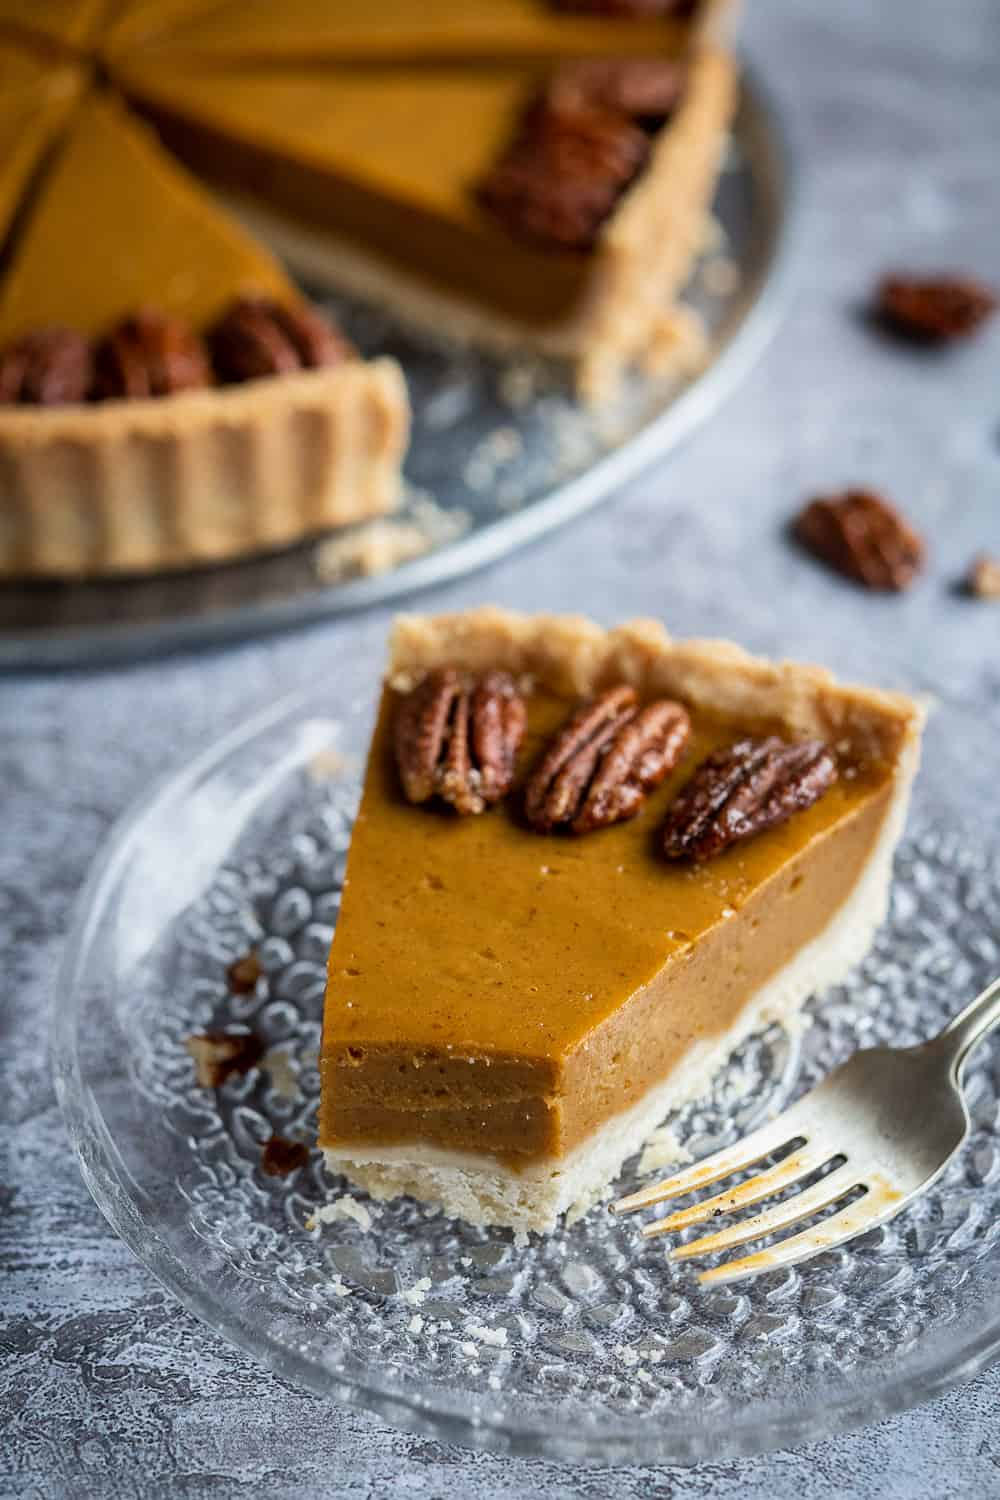 close up of a slice of vegan pumpkin pie with a forkful removed.